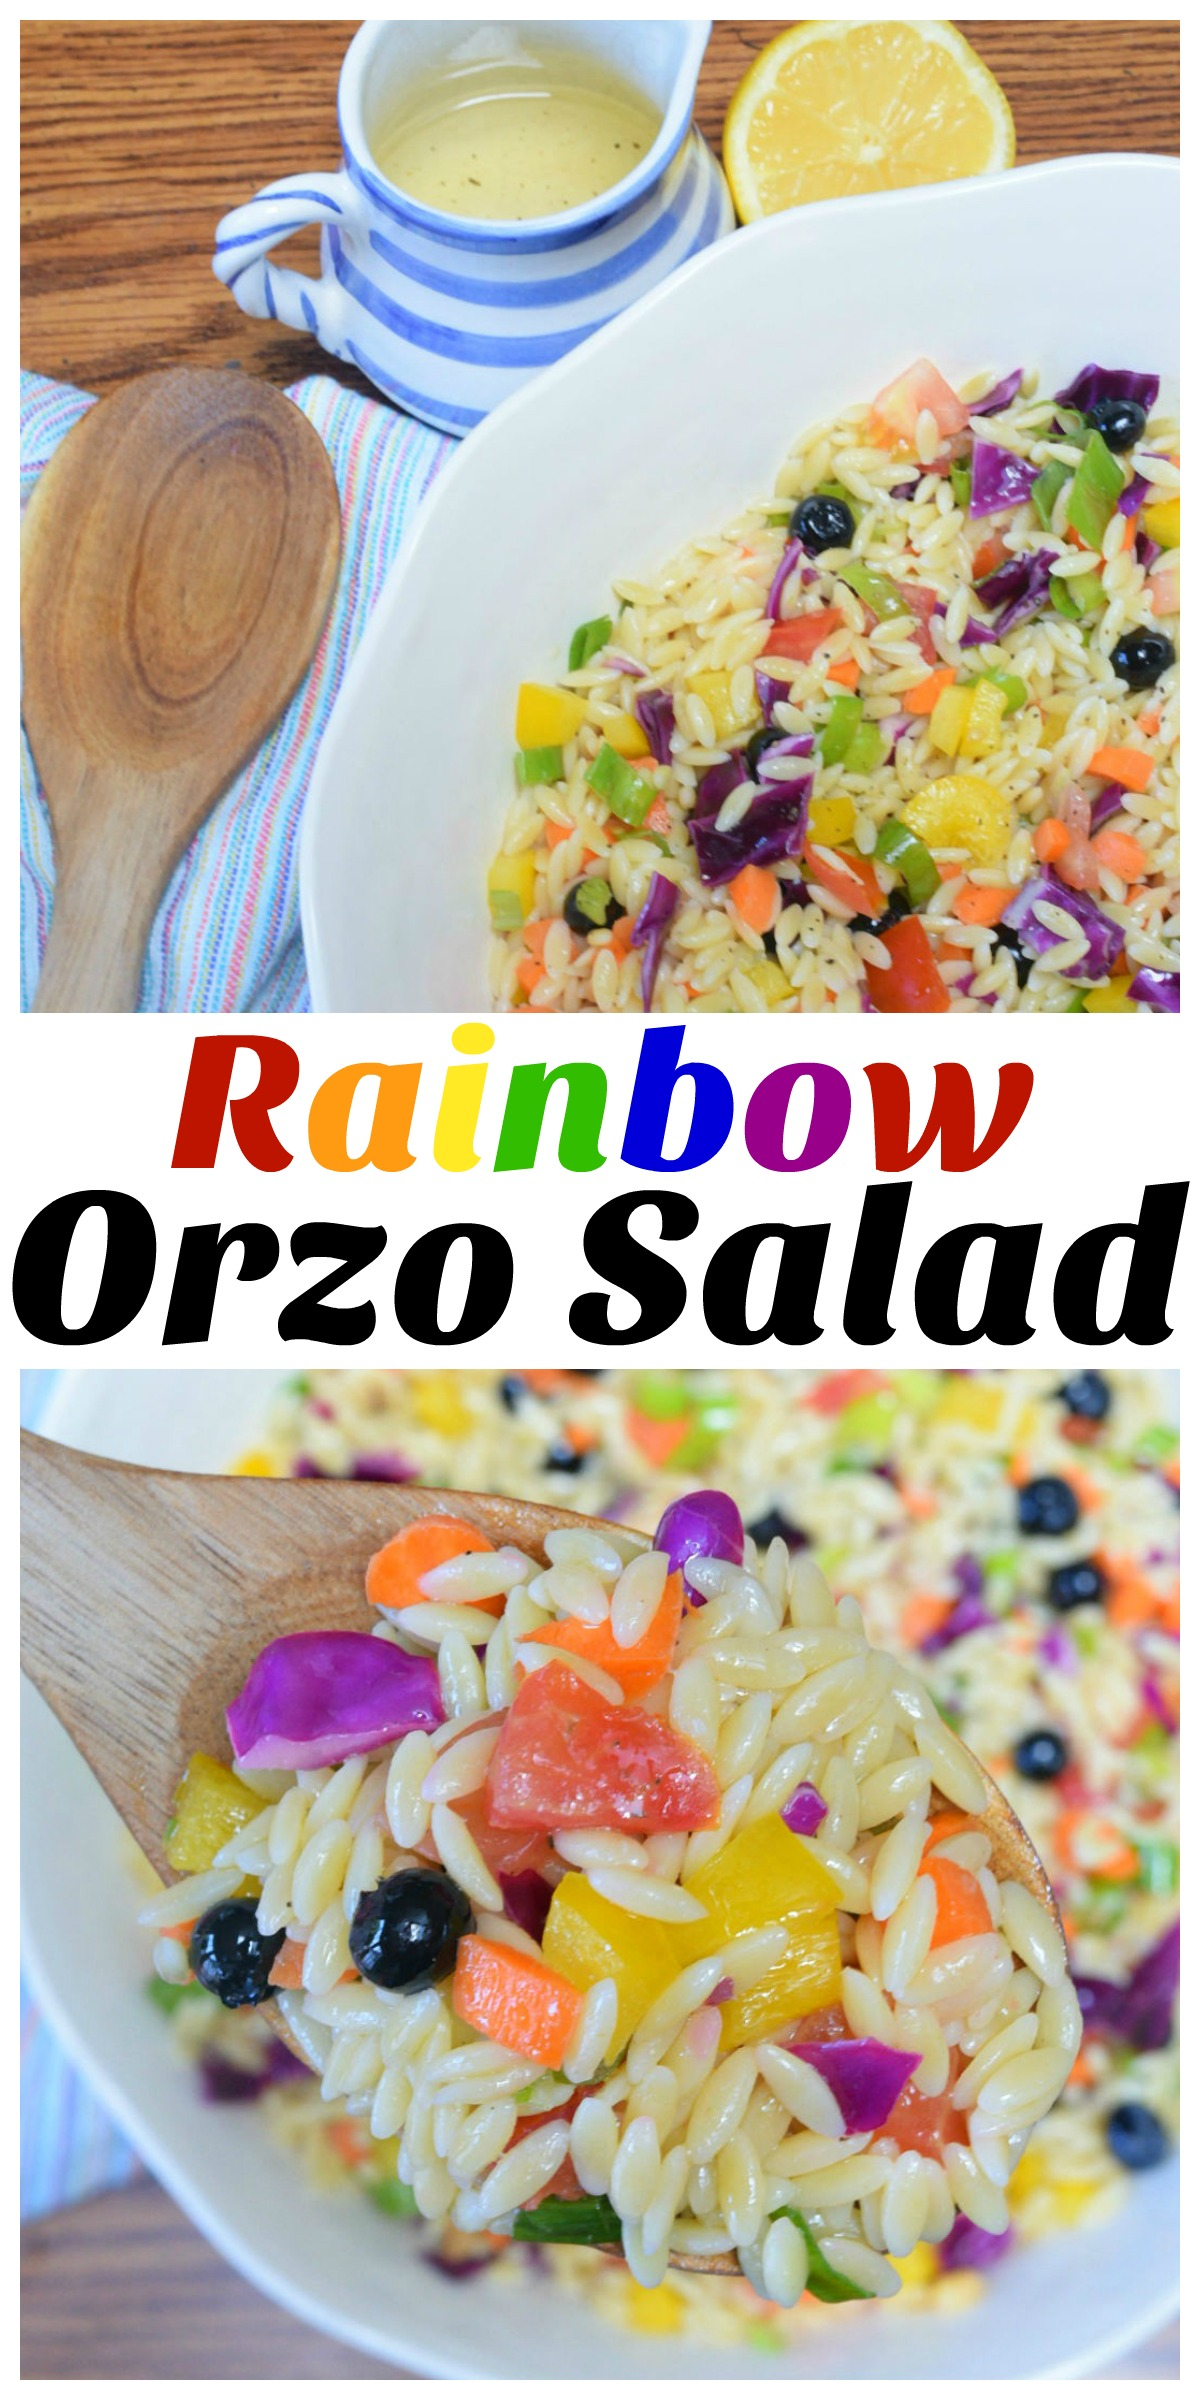 Rainbow Orzo Salad Collage